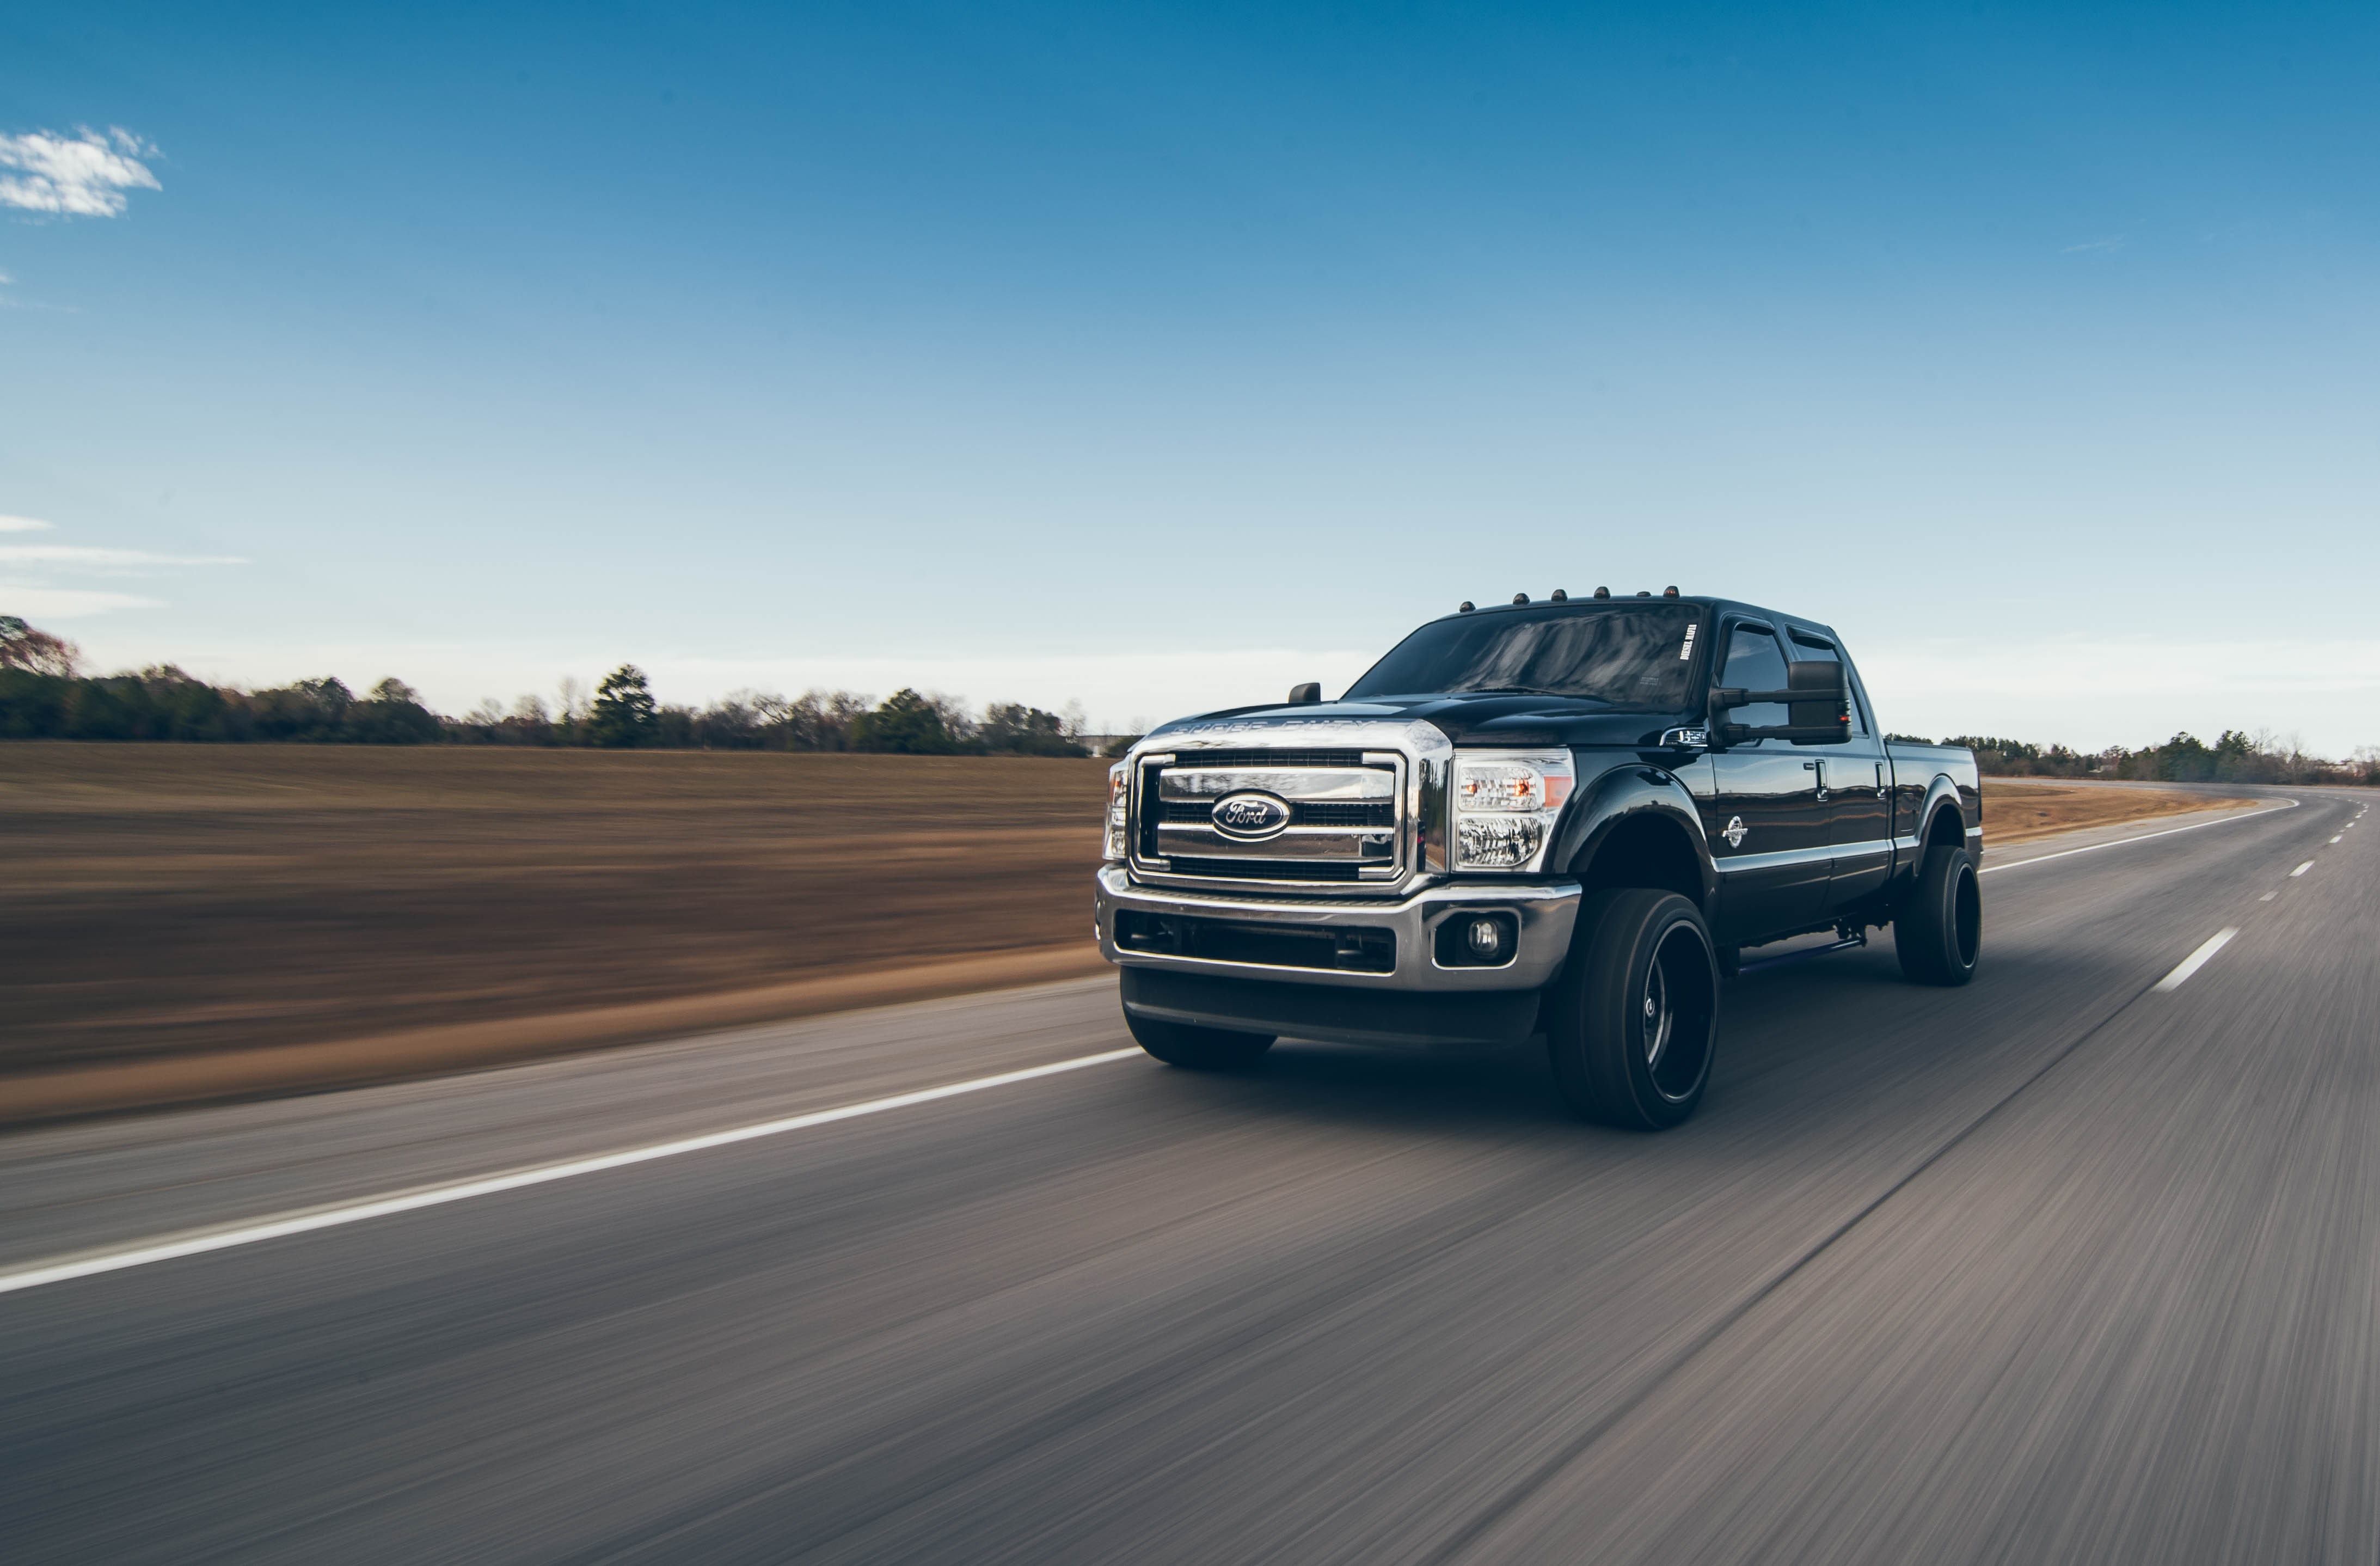 time lapsed photo of black Ford crew cab pickup truck on road